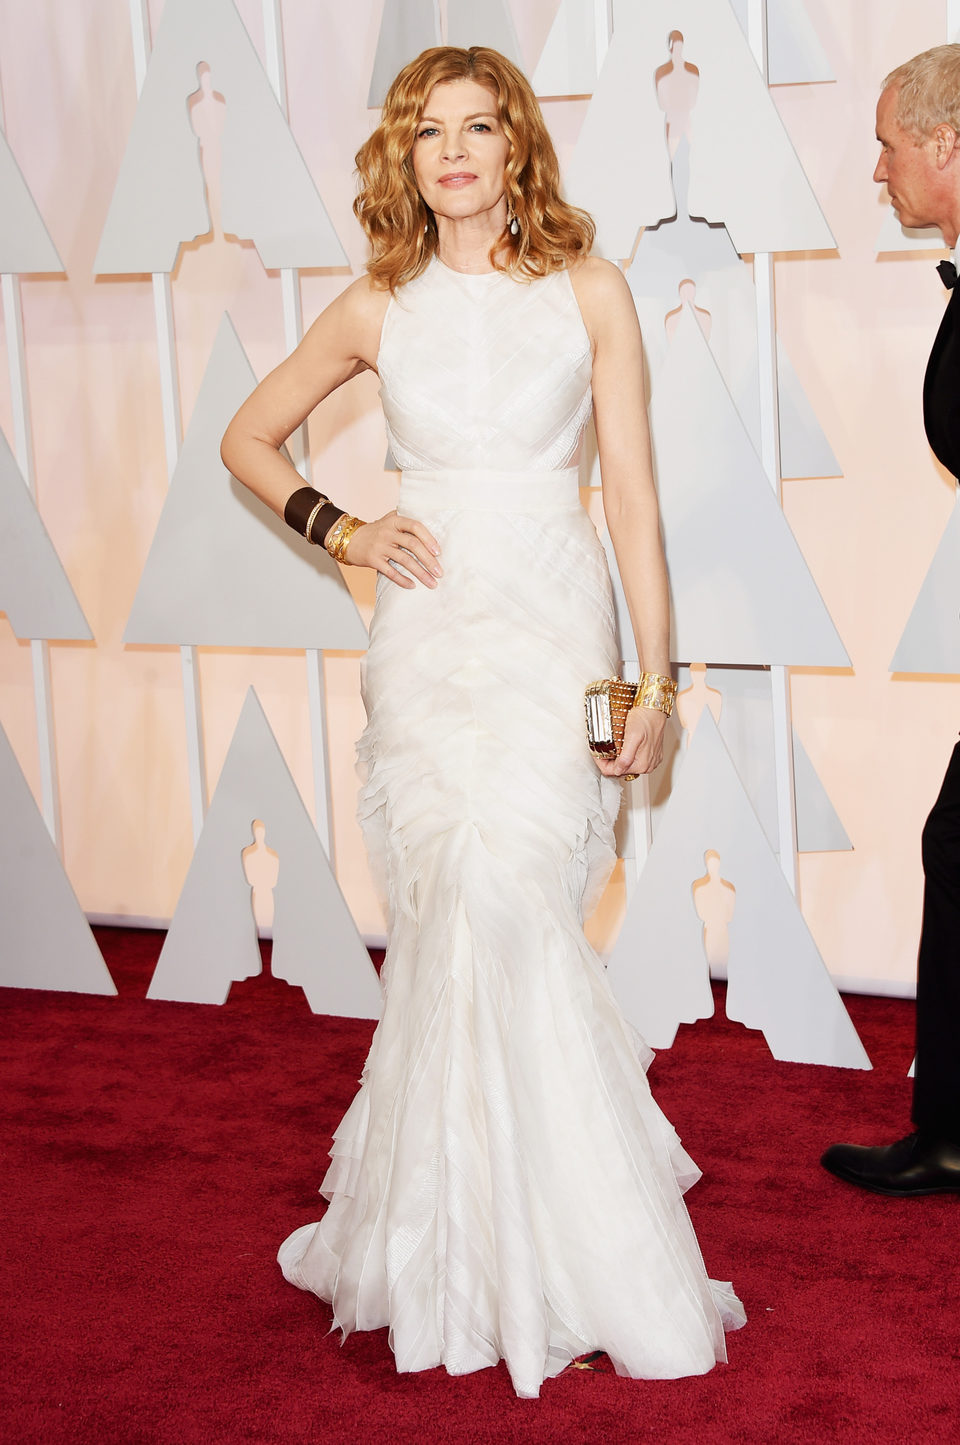 Rene Russo poses at the red carpet of the Oscar 2015